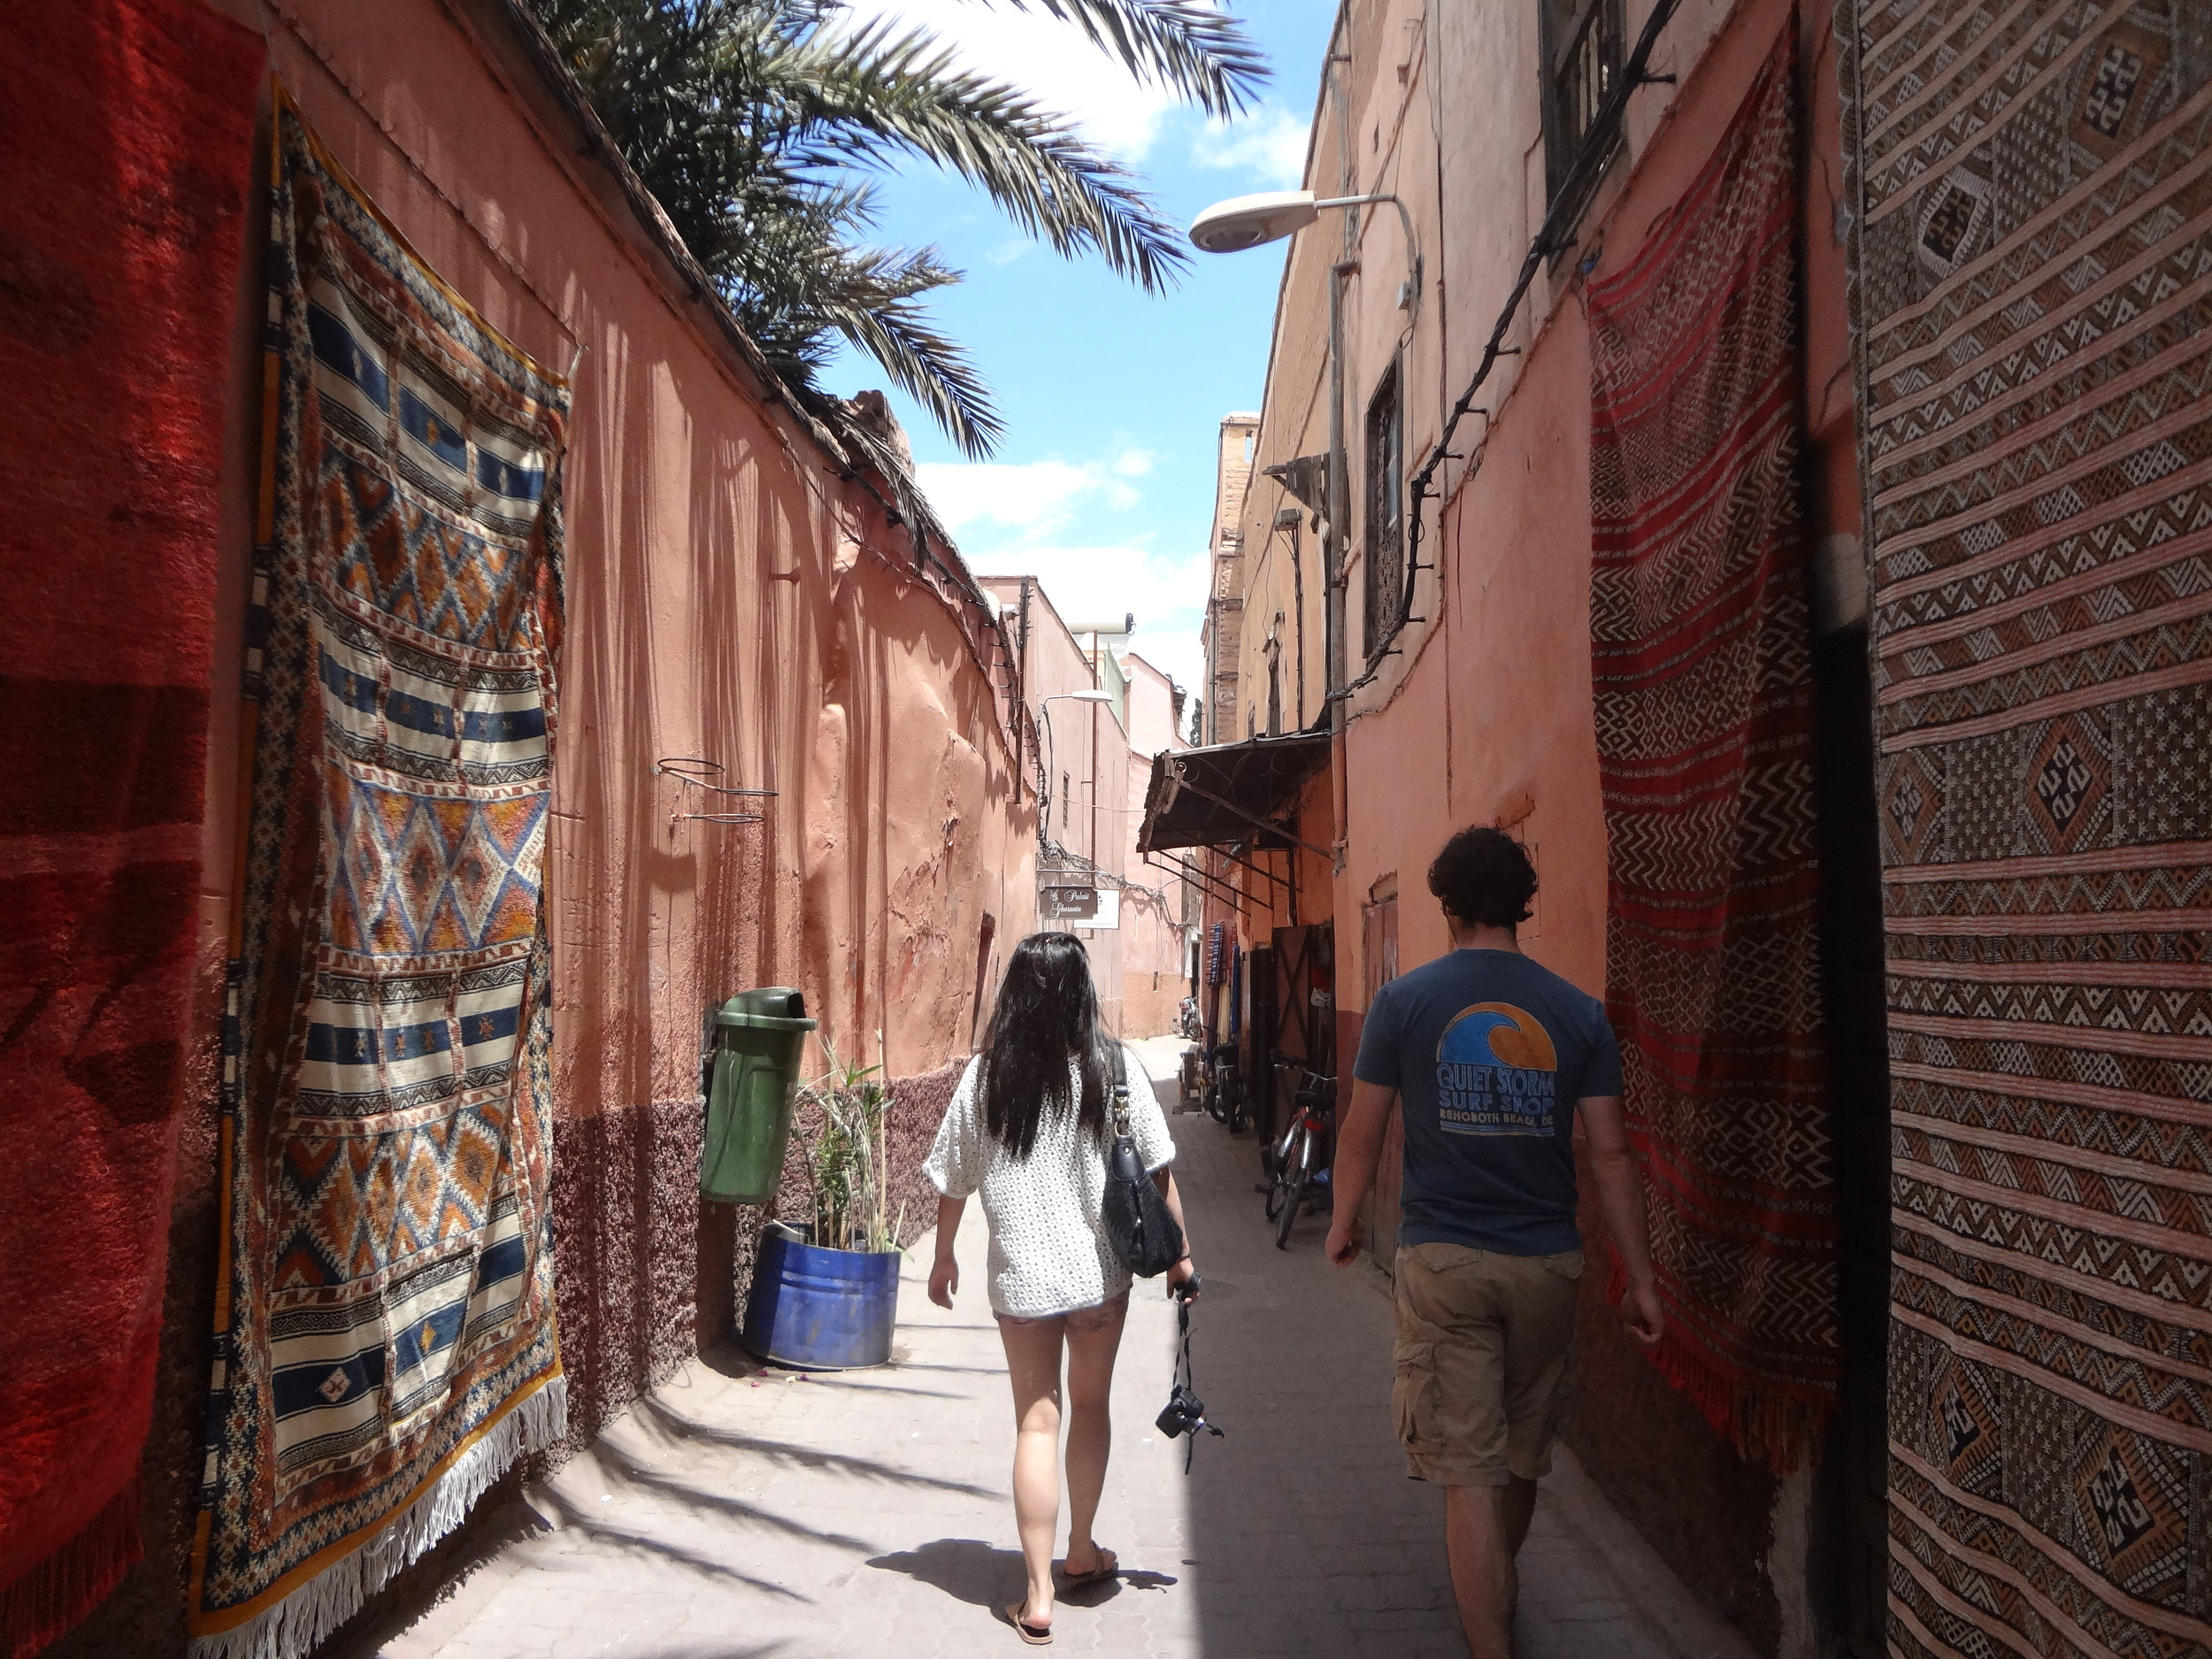 A walk down the streets of Marrakech